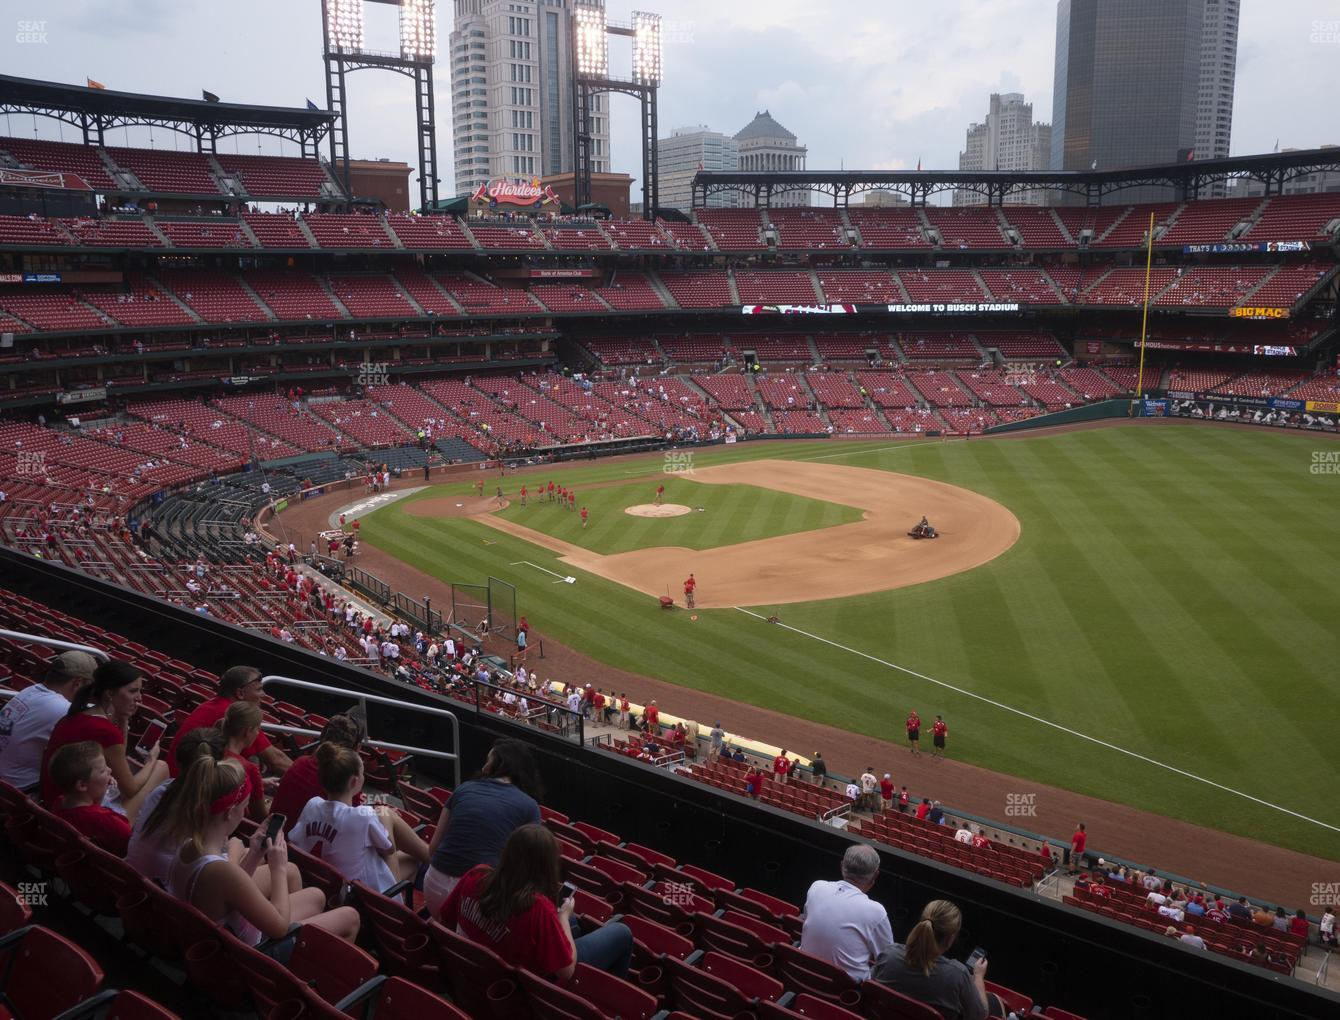 St. Louis Cardinals at Busch Stadium Right Field Loge 235 View